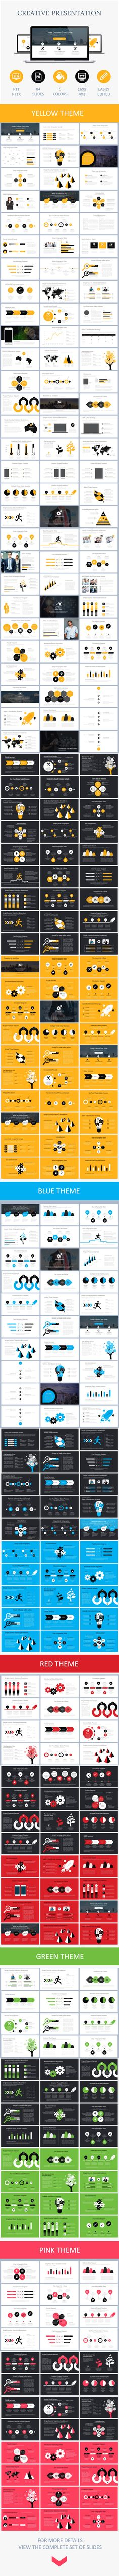 PowerPoint Templates for $15